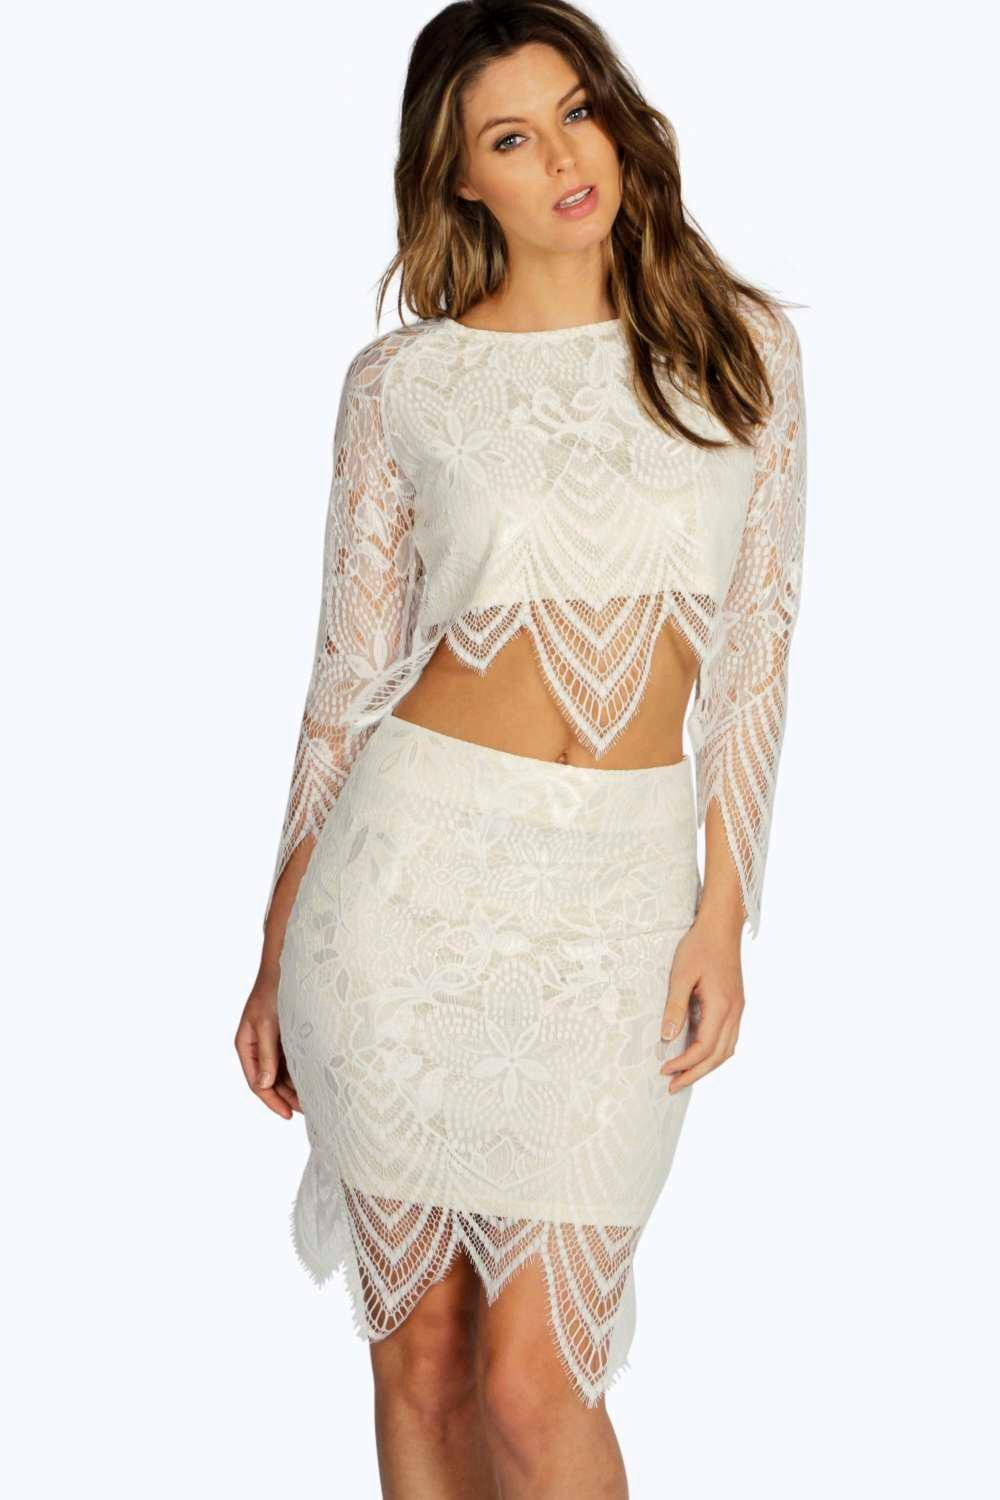 Boutique Bettina Premium Contrast Lace Skirt